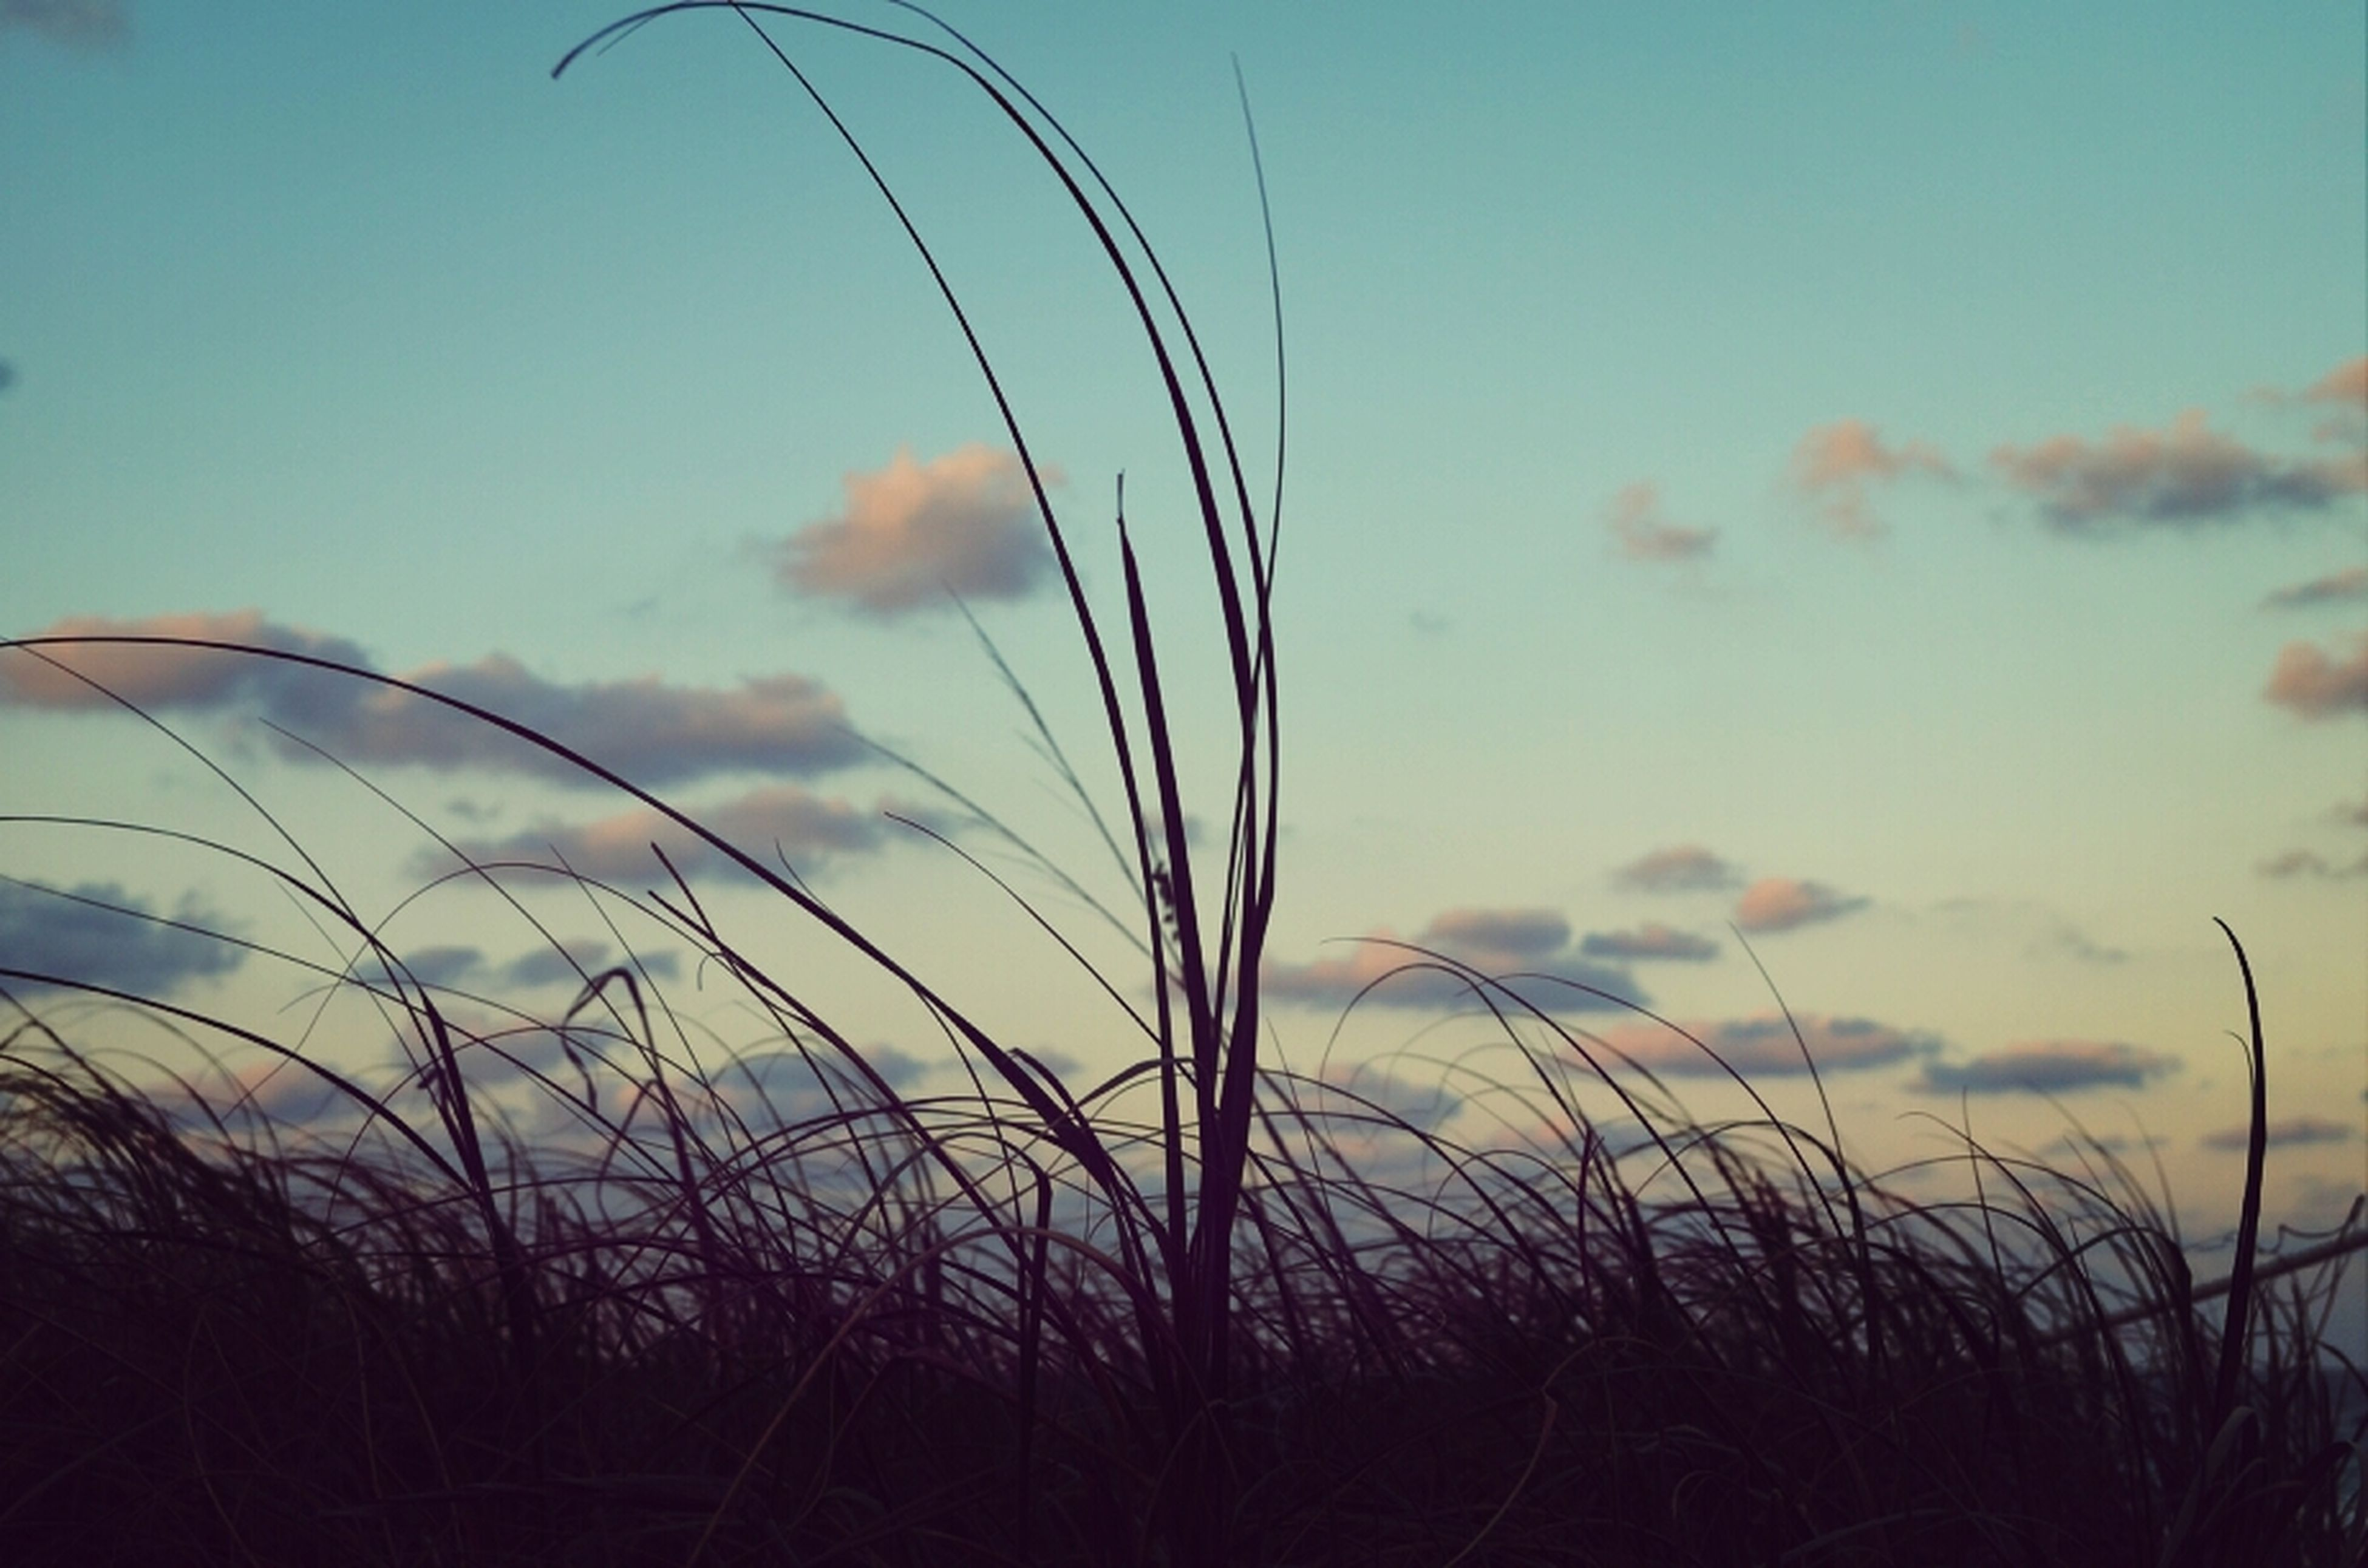 sky, sunset, field, tranquility, plant, silhouette, tranquil scene, nature, growth, beauty in nature, grass, scenics, rural scene, landscape, cloud - sky, cloud, dusk, agriculture, crop, cereal plant